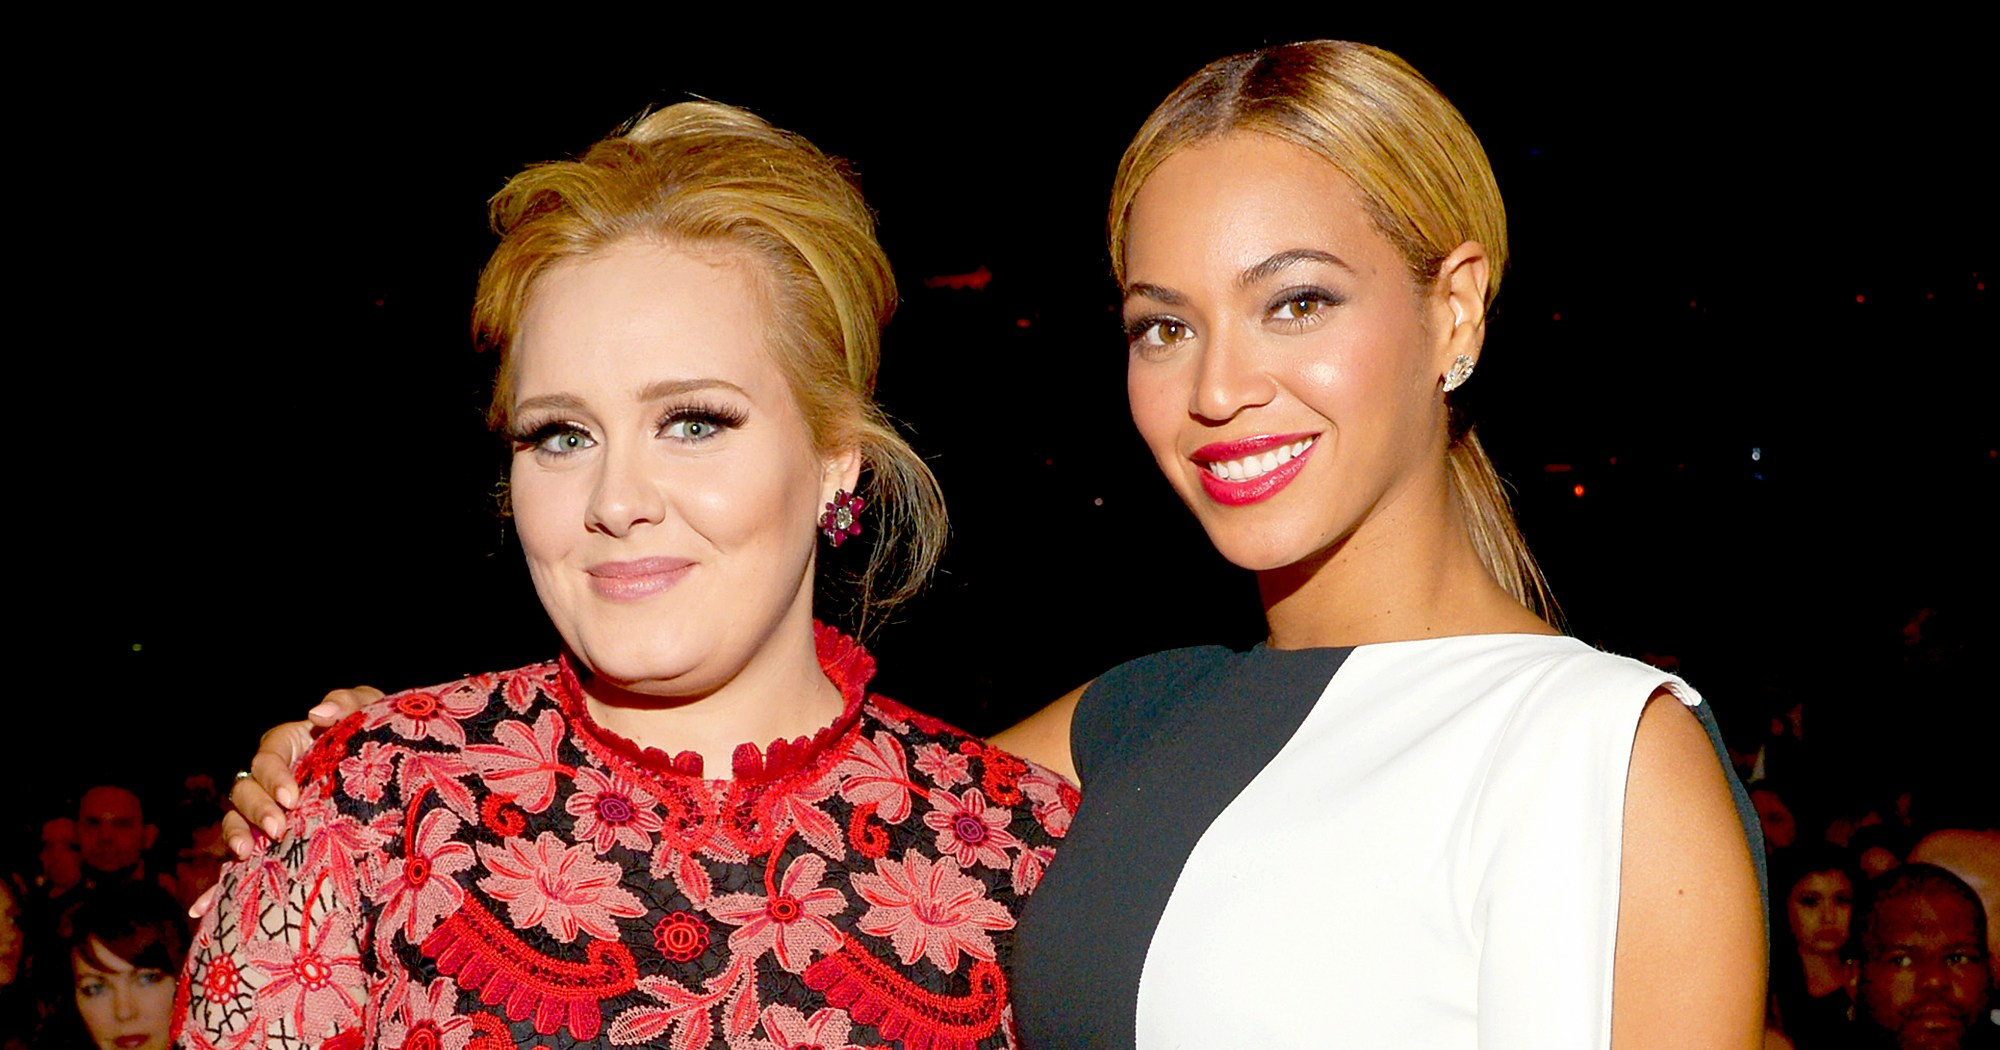 Adele Sings and Dances to Beyonce's 'Crazy in Love' During Concert in Australia